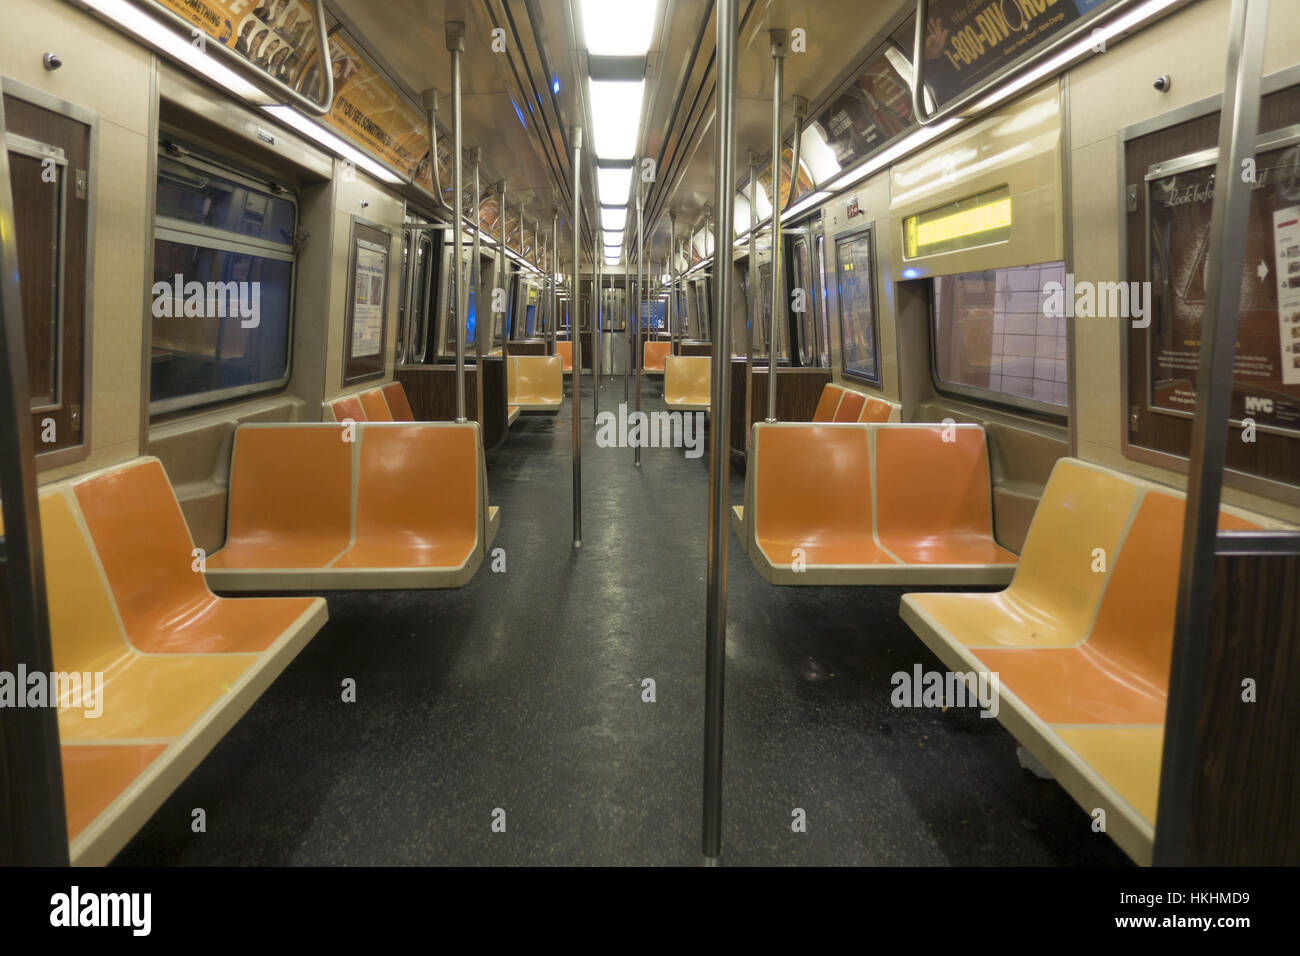 empty f train subway car in new york city stock photo royalty free image 132540277 alamy. Black Bedroom Furniture Sets. Home Design Ideas